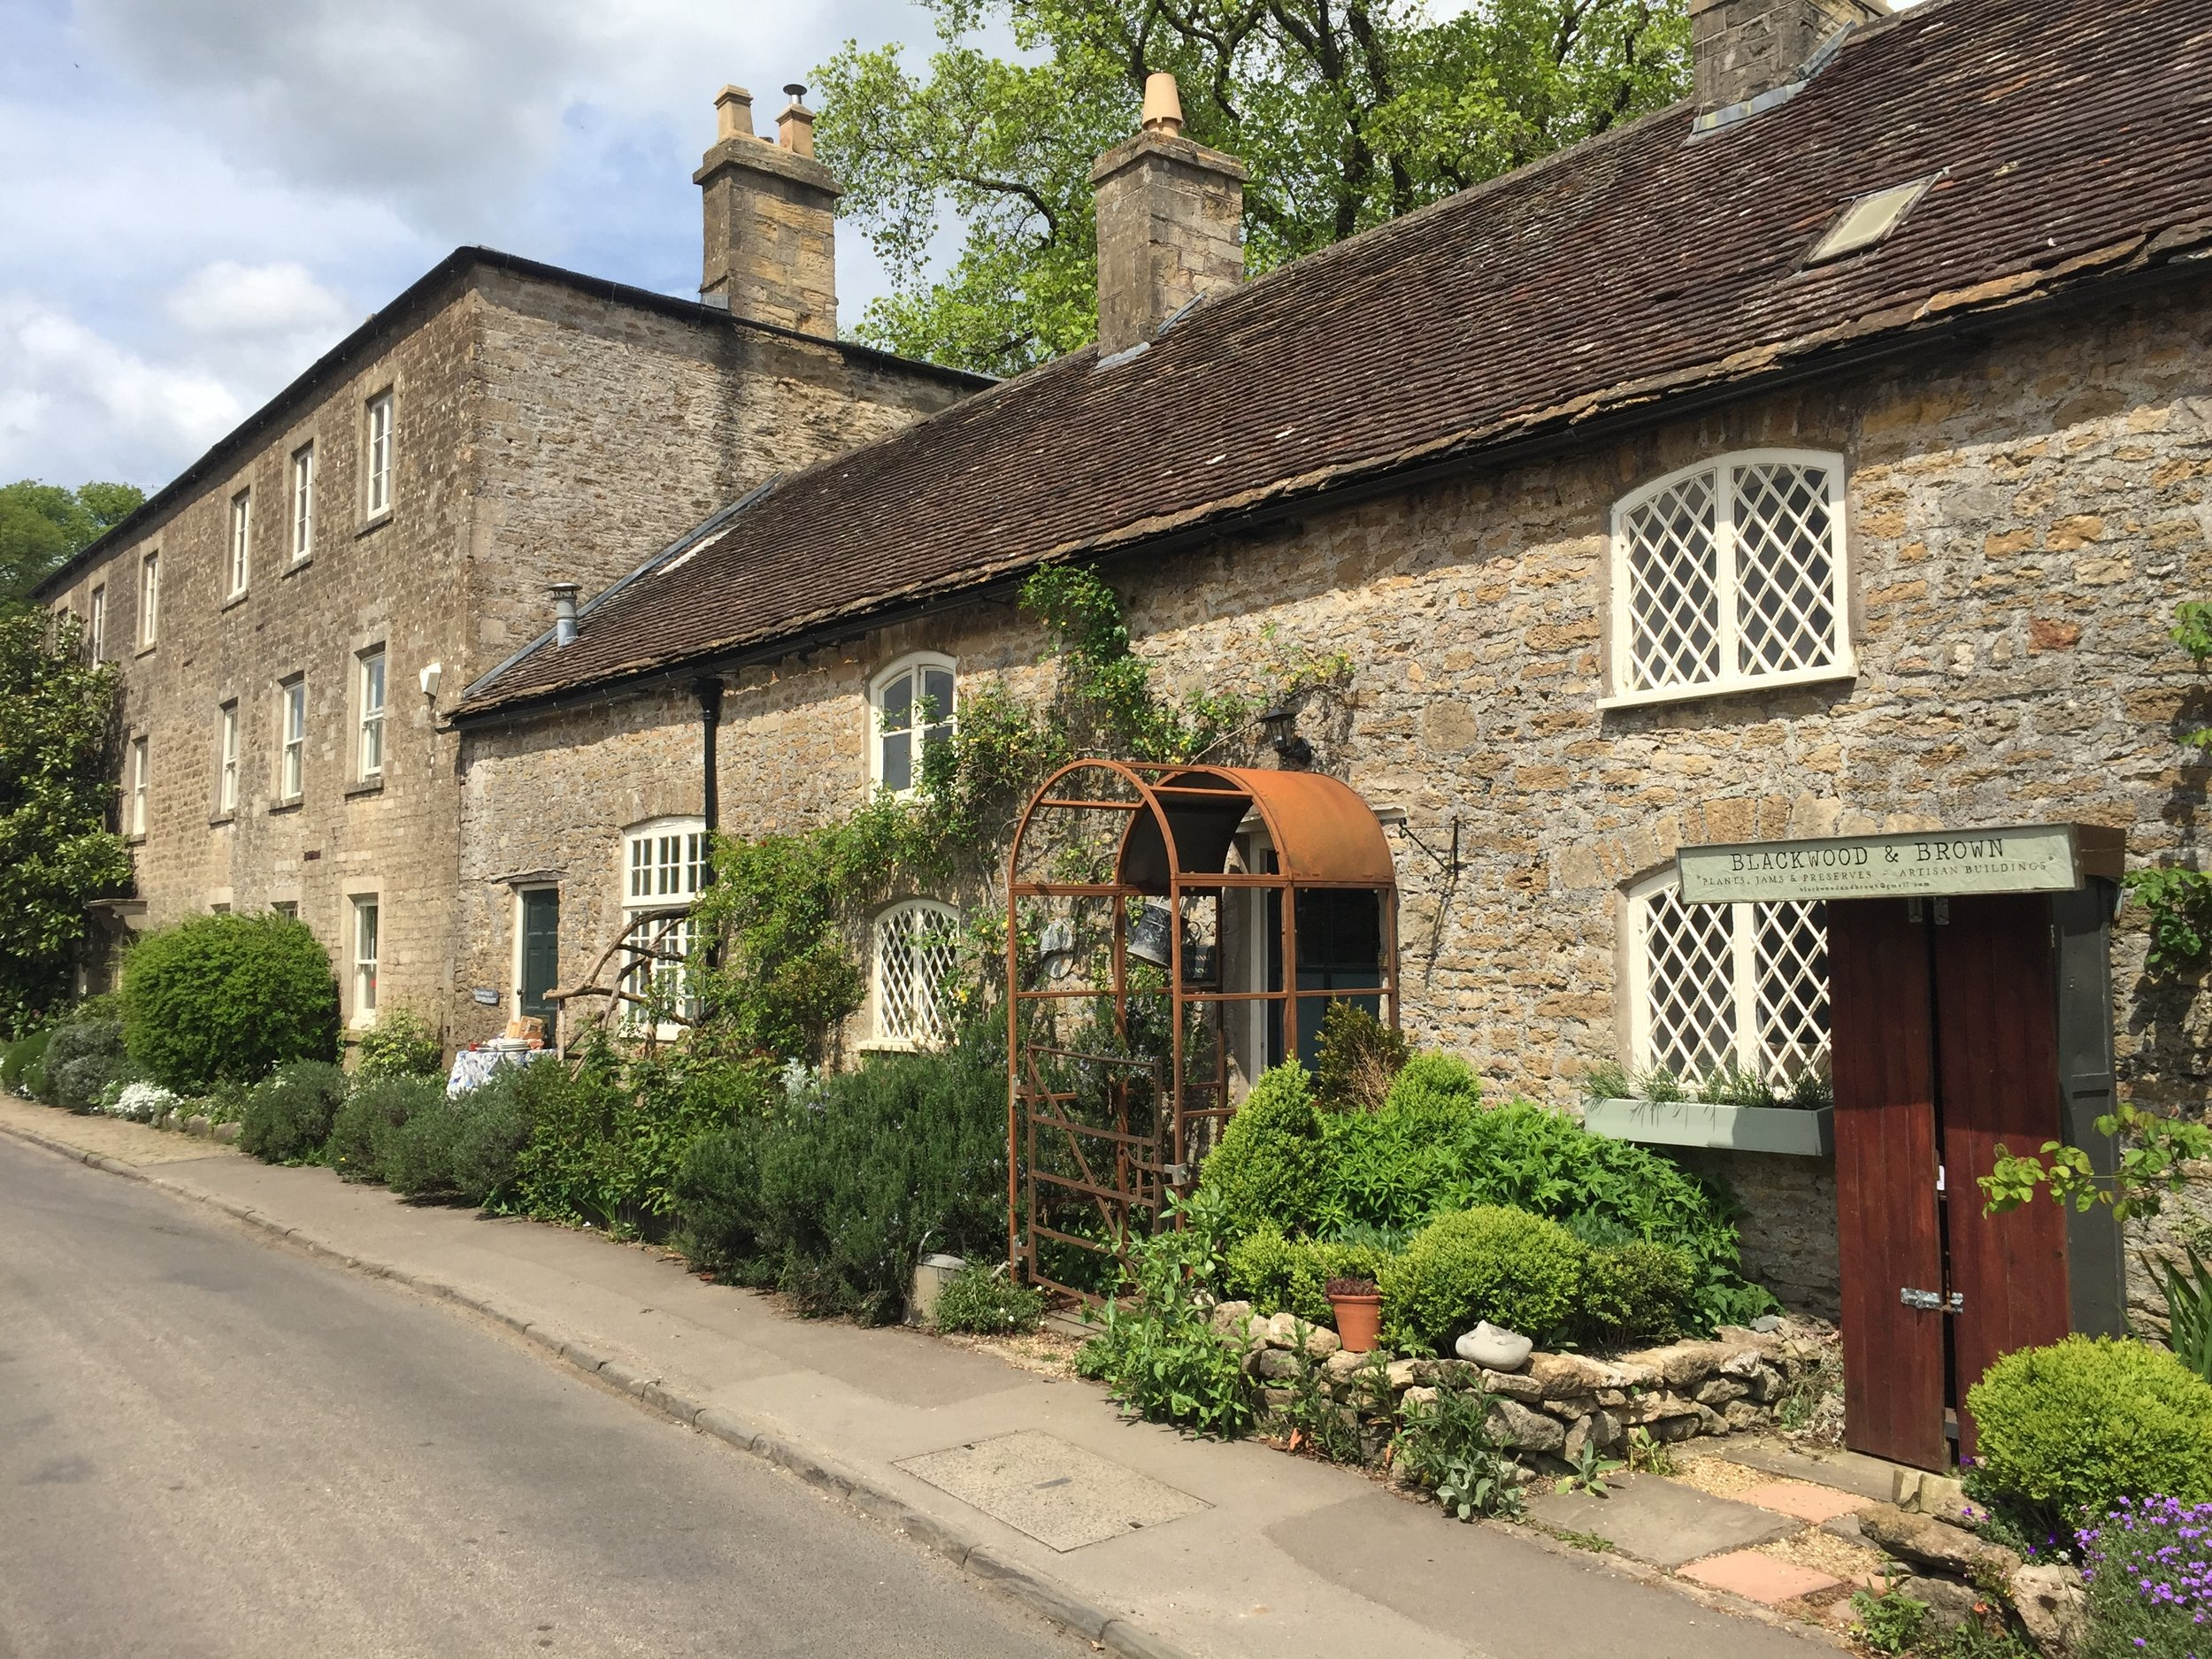 mells village - Mells is a picturesque Somerset village with a rich history. Take a stroll along the river and stop for lunch at The Talbot Inn, the award winning pub, or grab a cup of tea and homemade cake at The Walled Garden.www.mellsvillage.co.uk